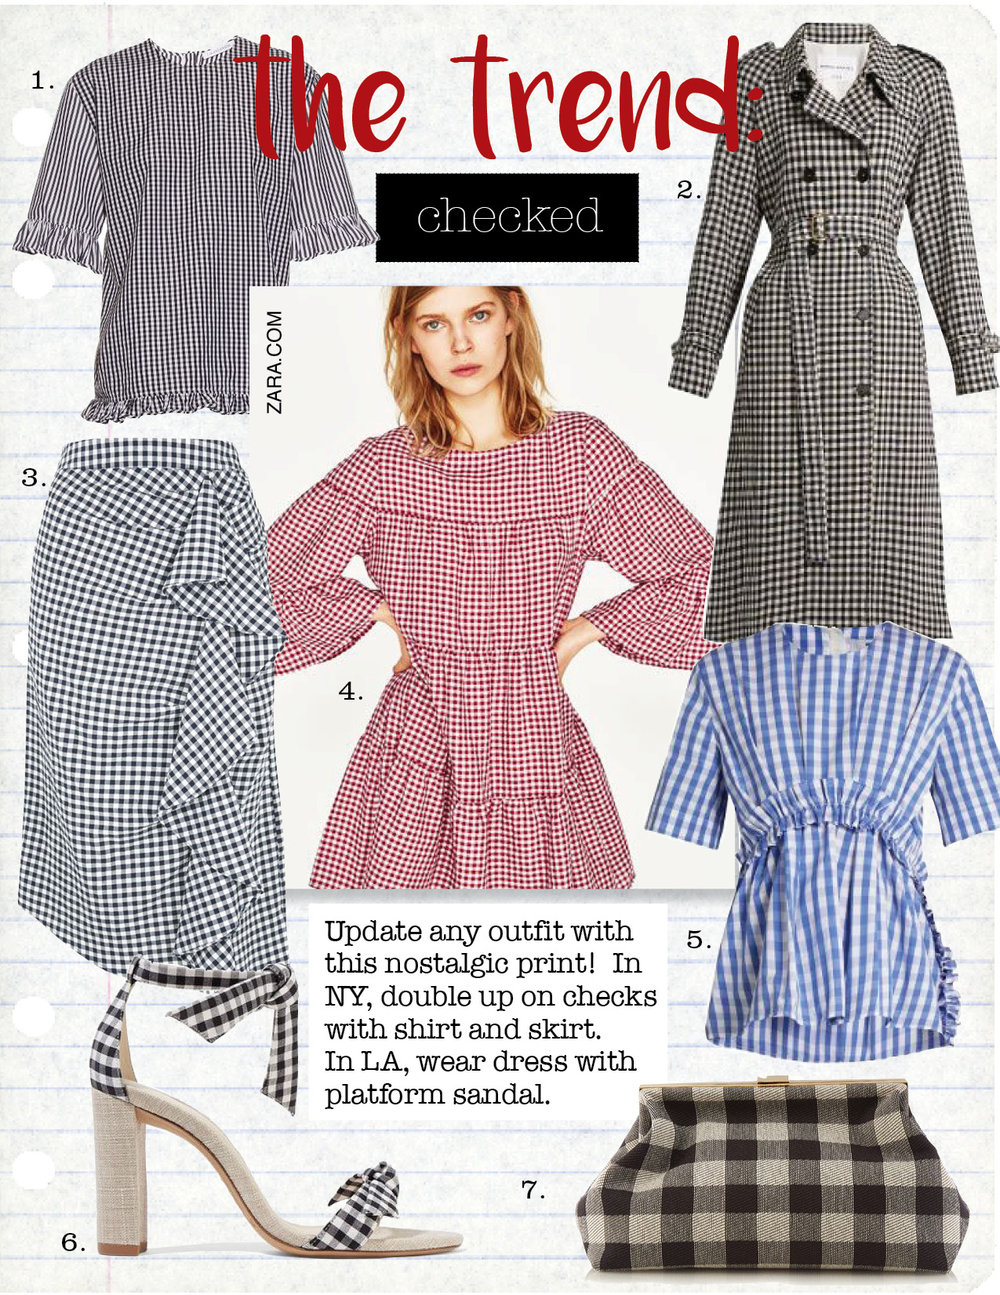 1. j.w.anderson gingham ruffled cotton top, $270,  matchesfashion.com  2. sonia rykiel gingham wool trench coat, $1331,  matchesfashion.com  3. topshop gingham ruffle midi skirt, $75,  topshop.com  4. zara gingham mini dress, $49,  zara.com  5. msgm gingham ruffle-trimmed cotton top, $237,  matchesfashion.com  6. alexandre birman clarita gingham and canvas sandals, $495,  net-a-porter.com  7. mansur gavriel volume gingham clutch, $606,  matchesfashion.com